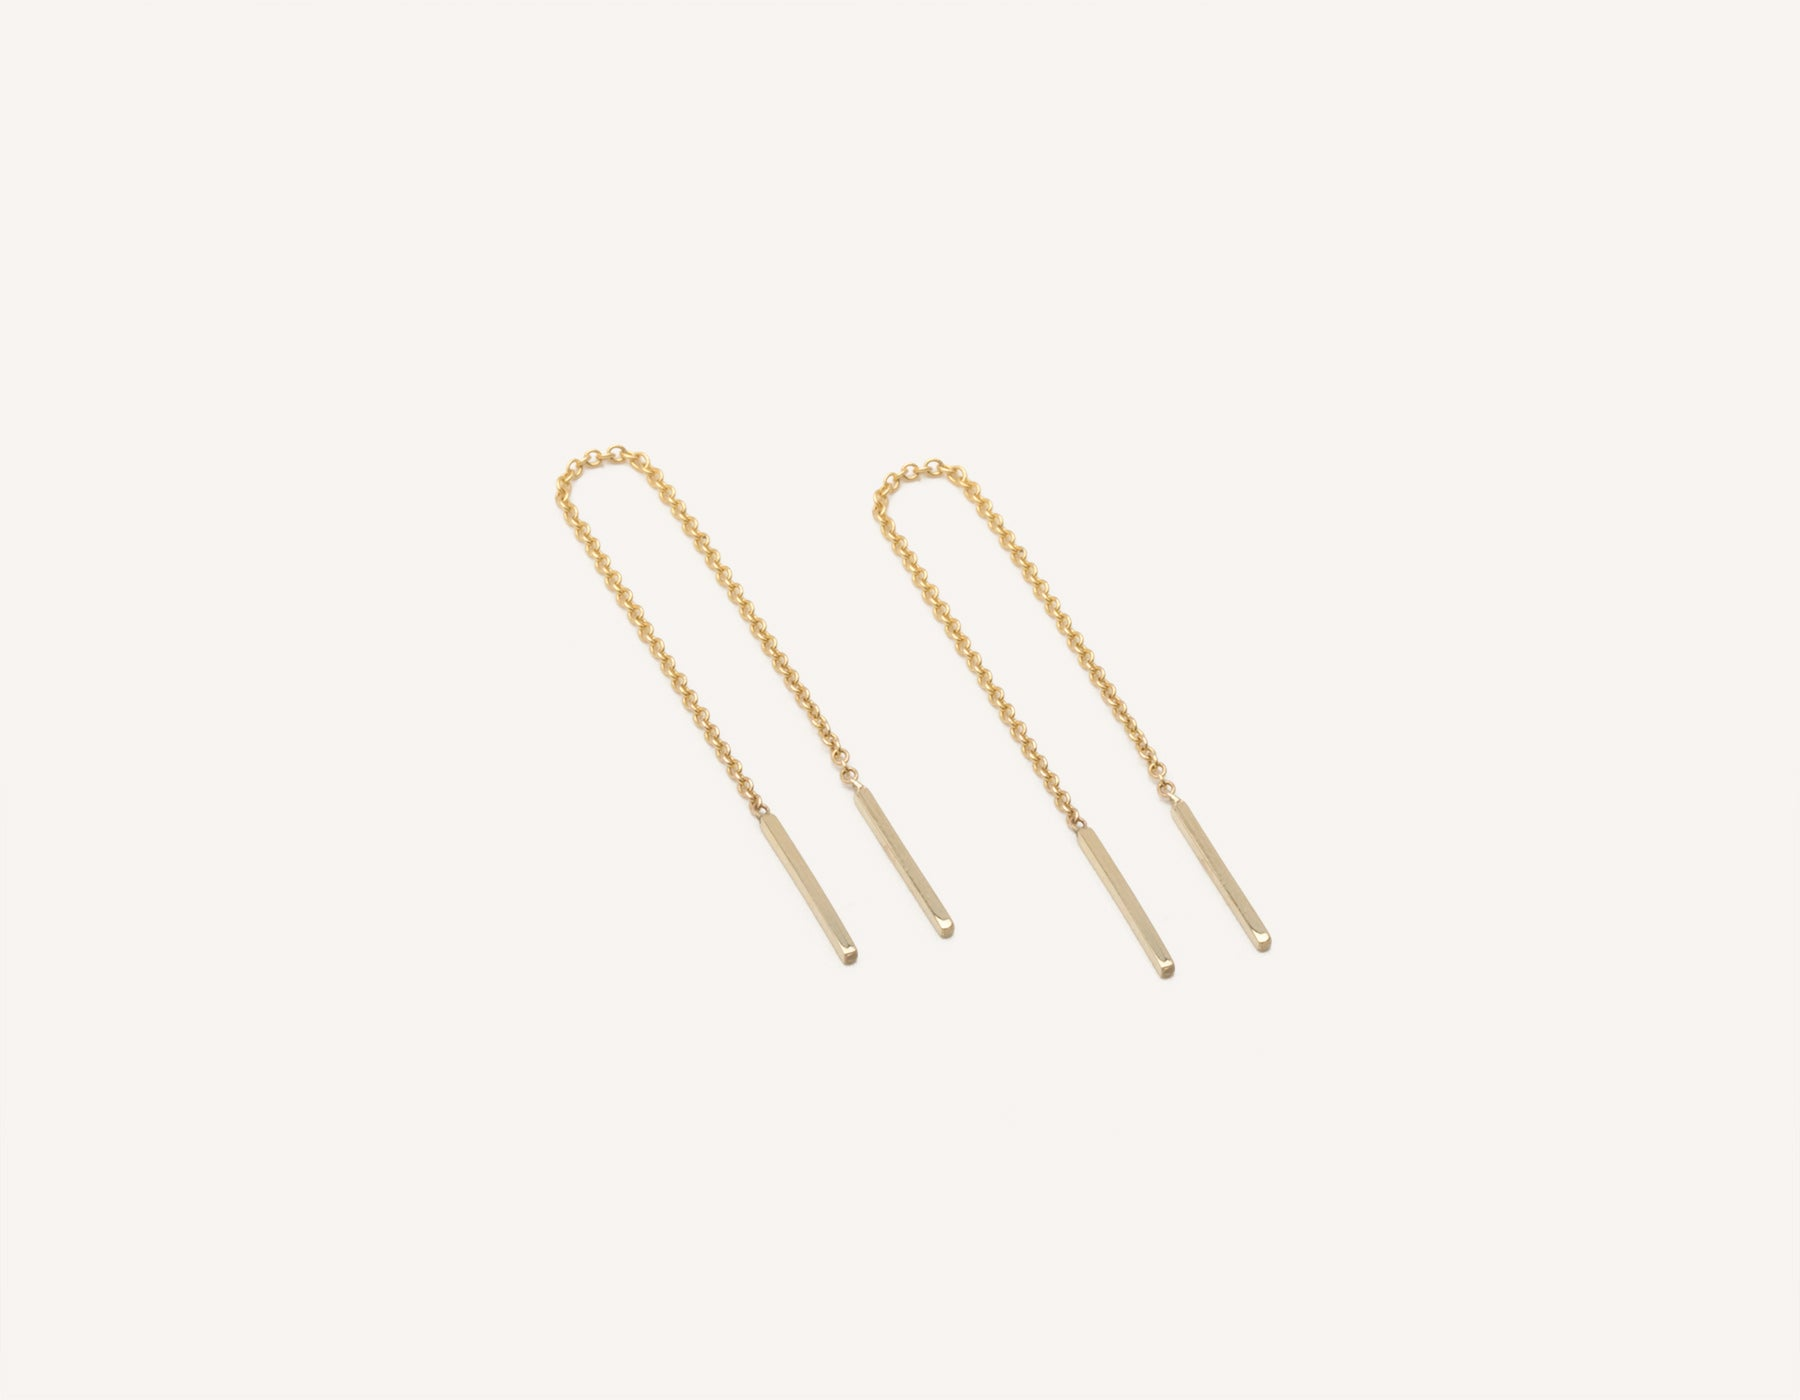 Vrai & Oro dainty minimalist 14K Solid Gold Line Threader Chain Earrings, 14K Yellow Gold